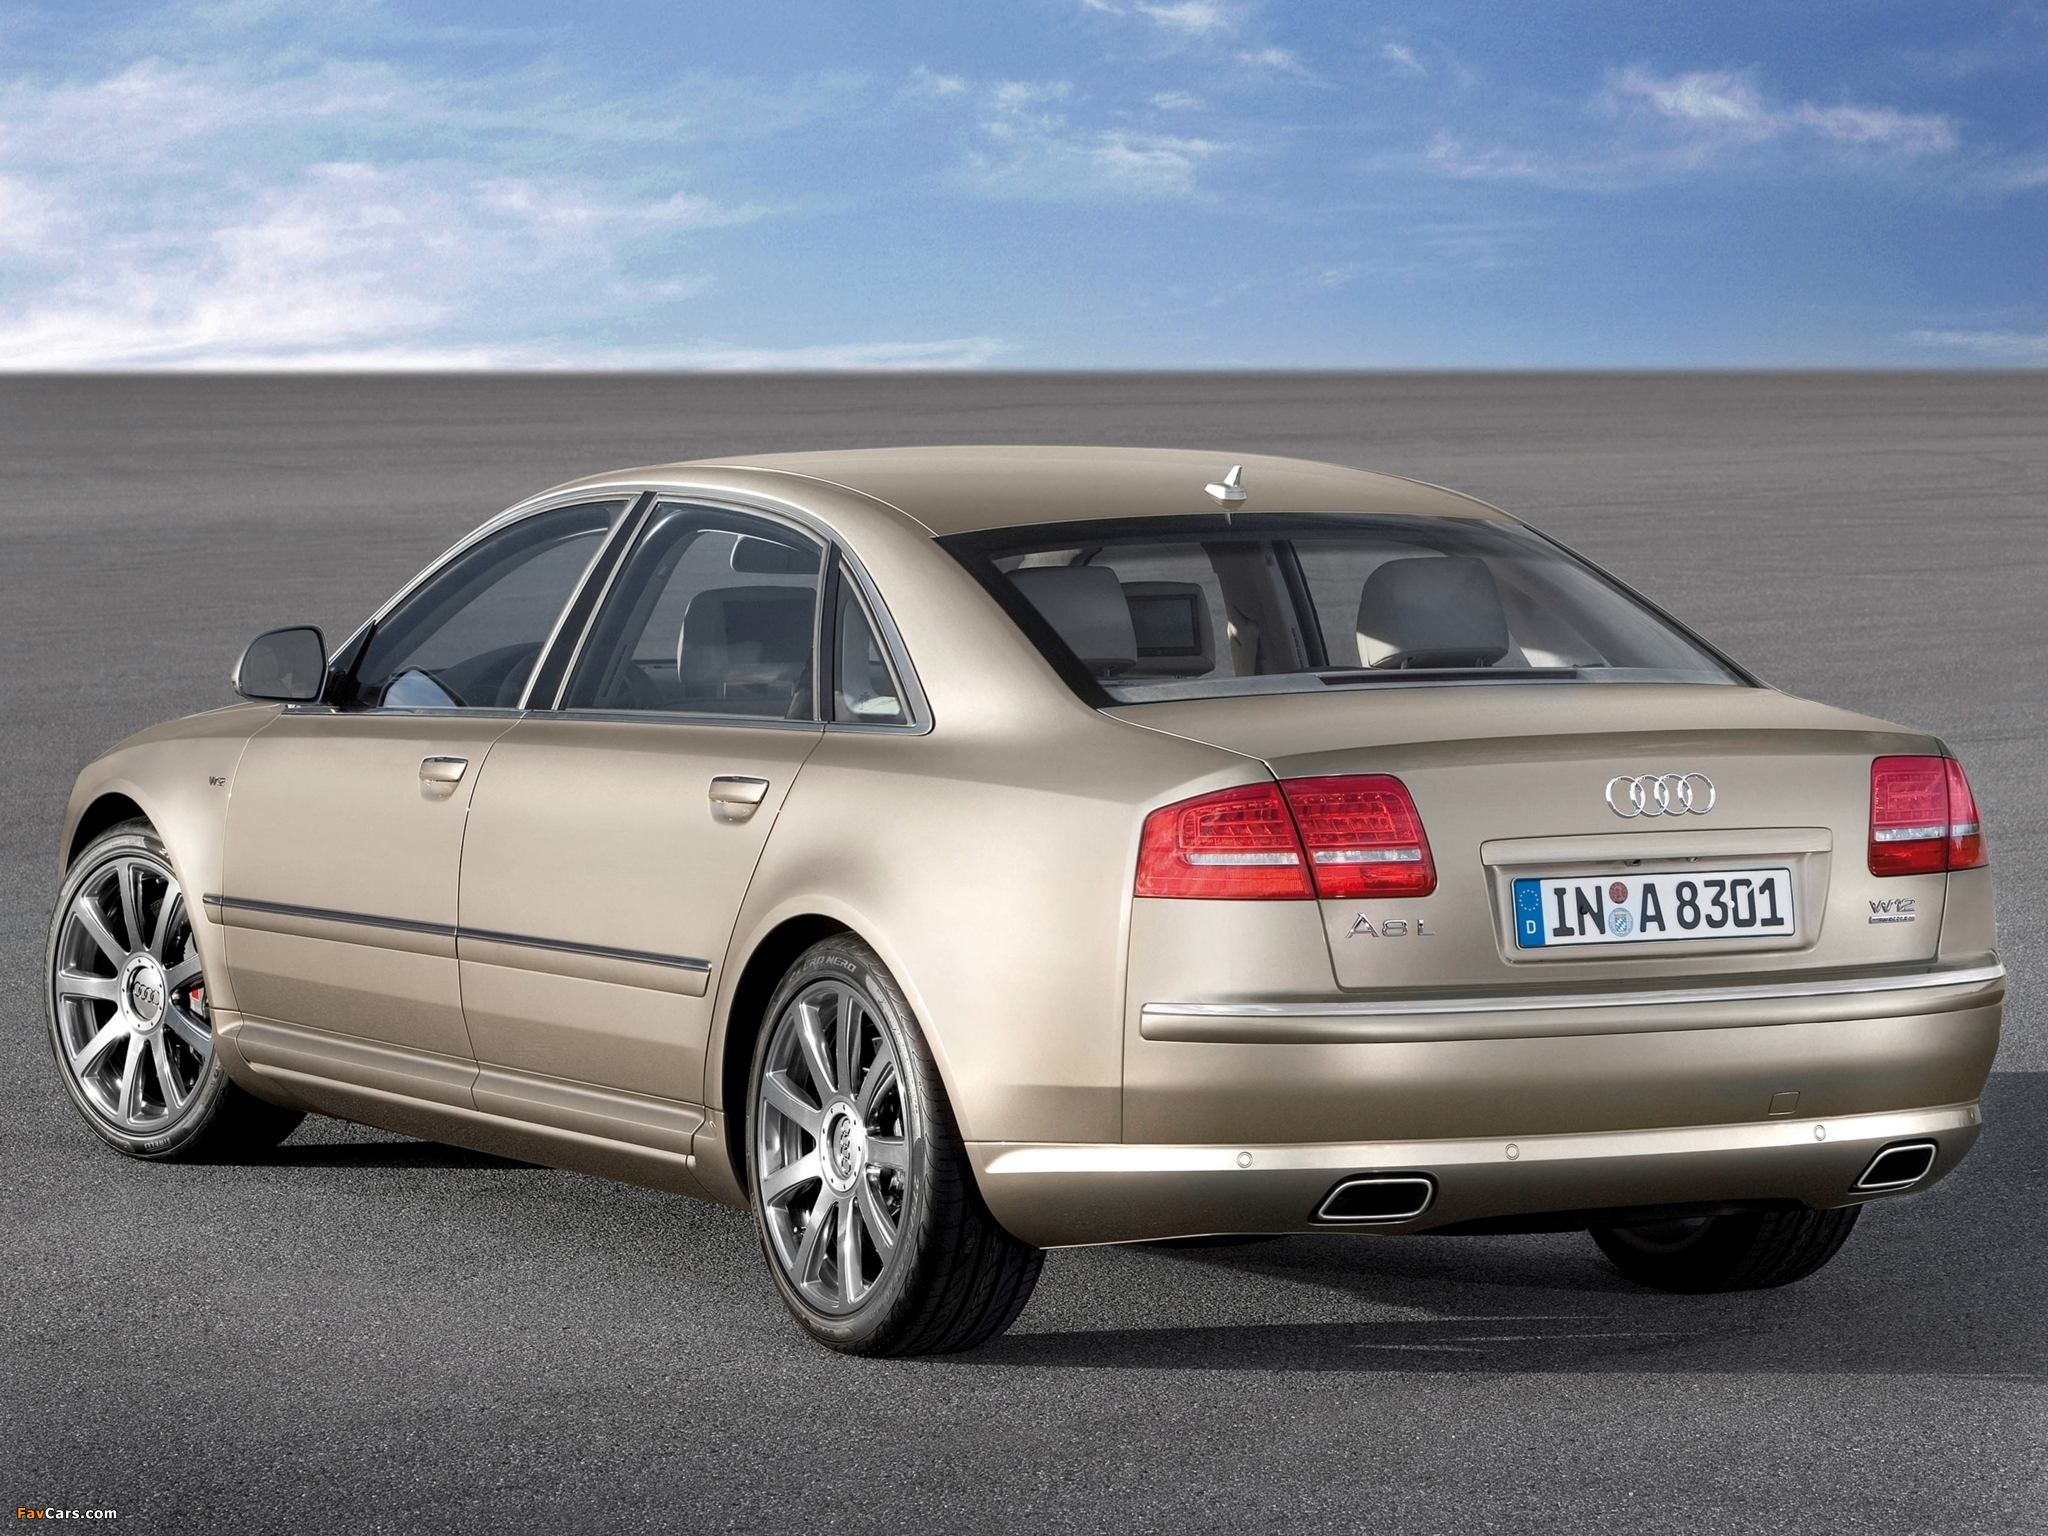 Images Of Audi A8l W12 Quattro D3 2008 10 2048x1536